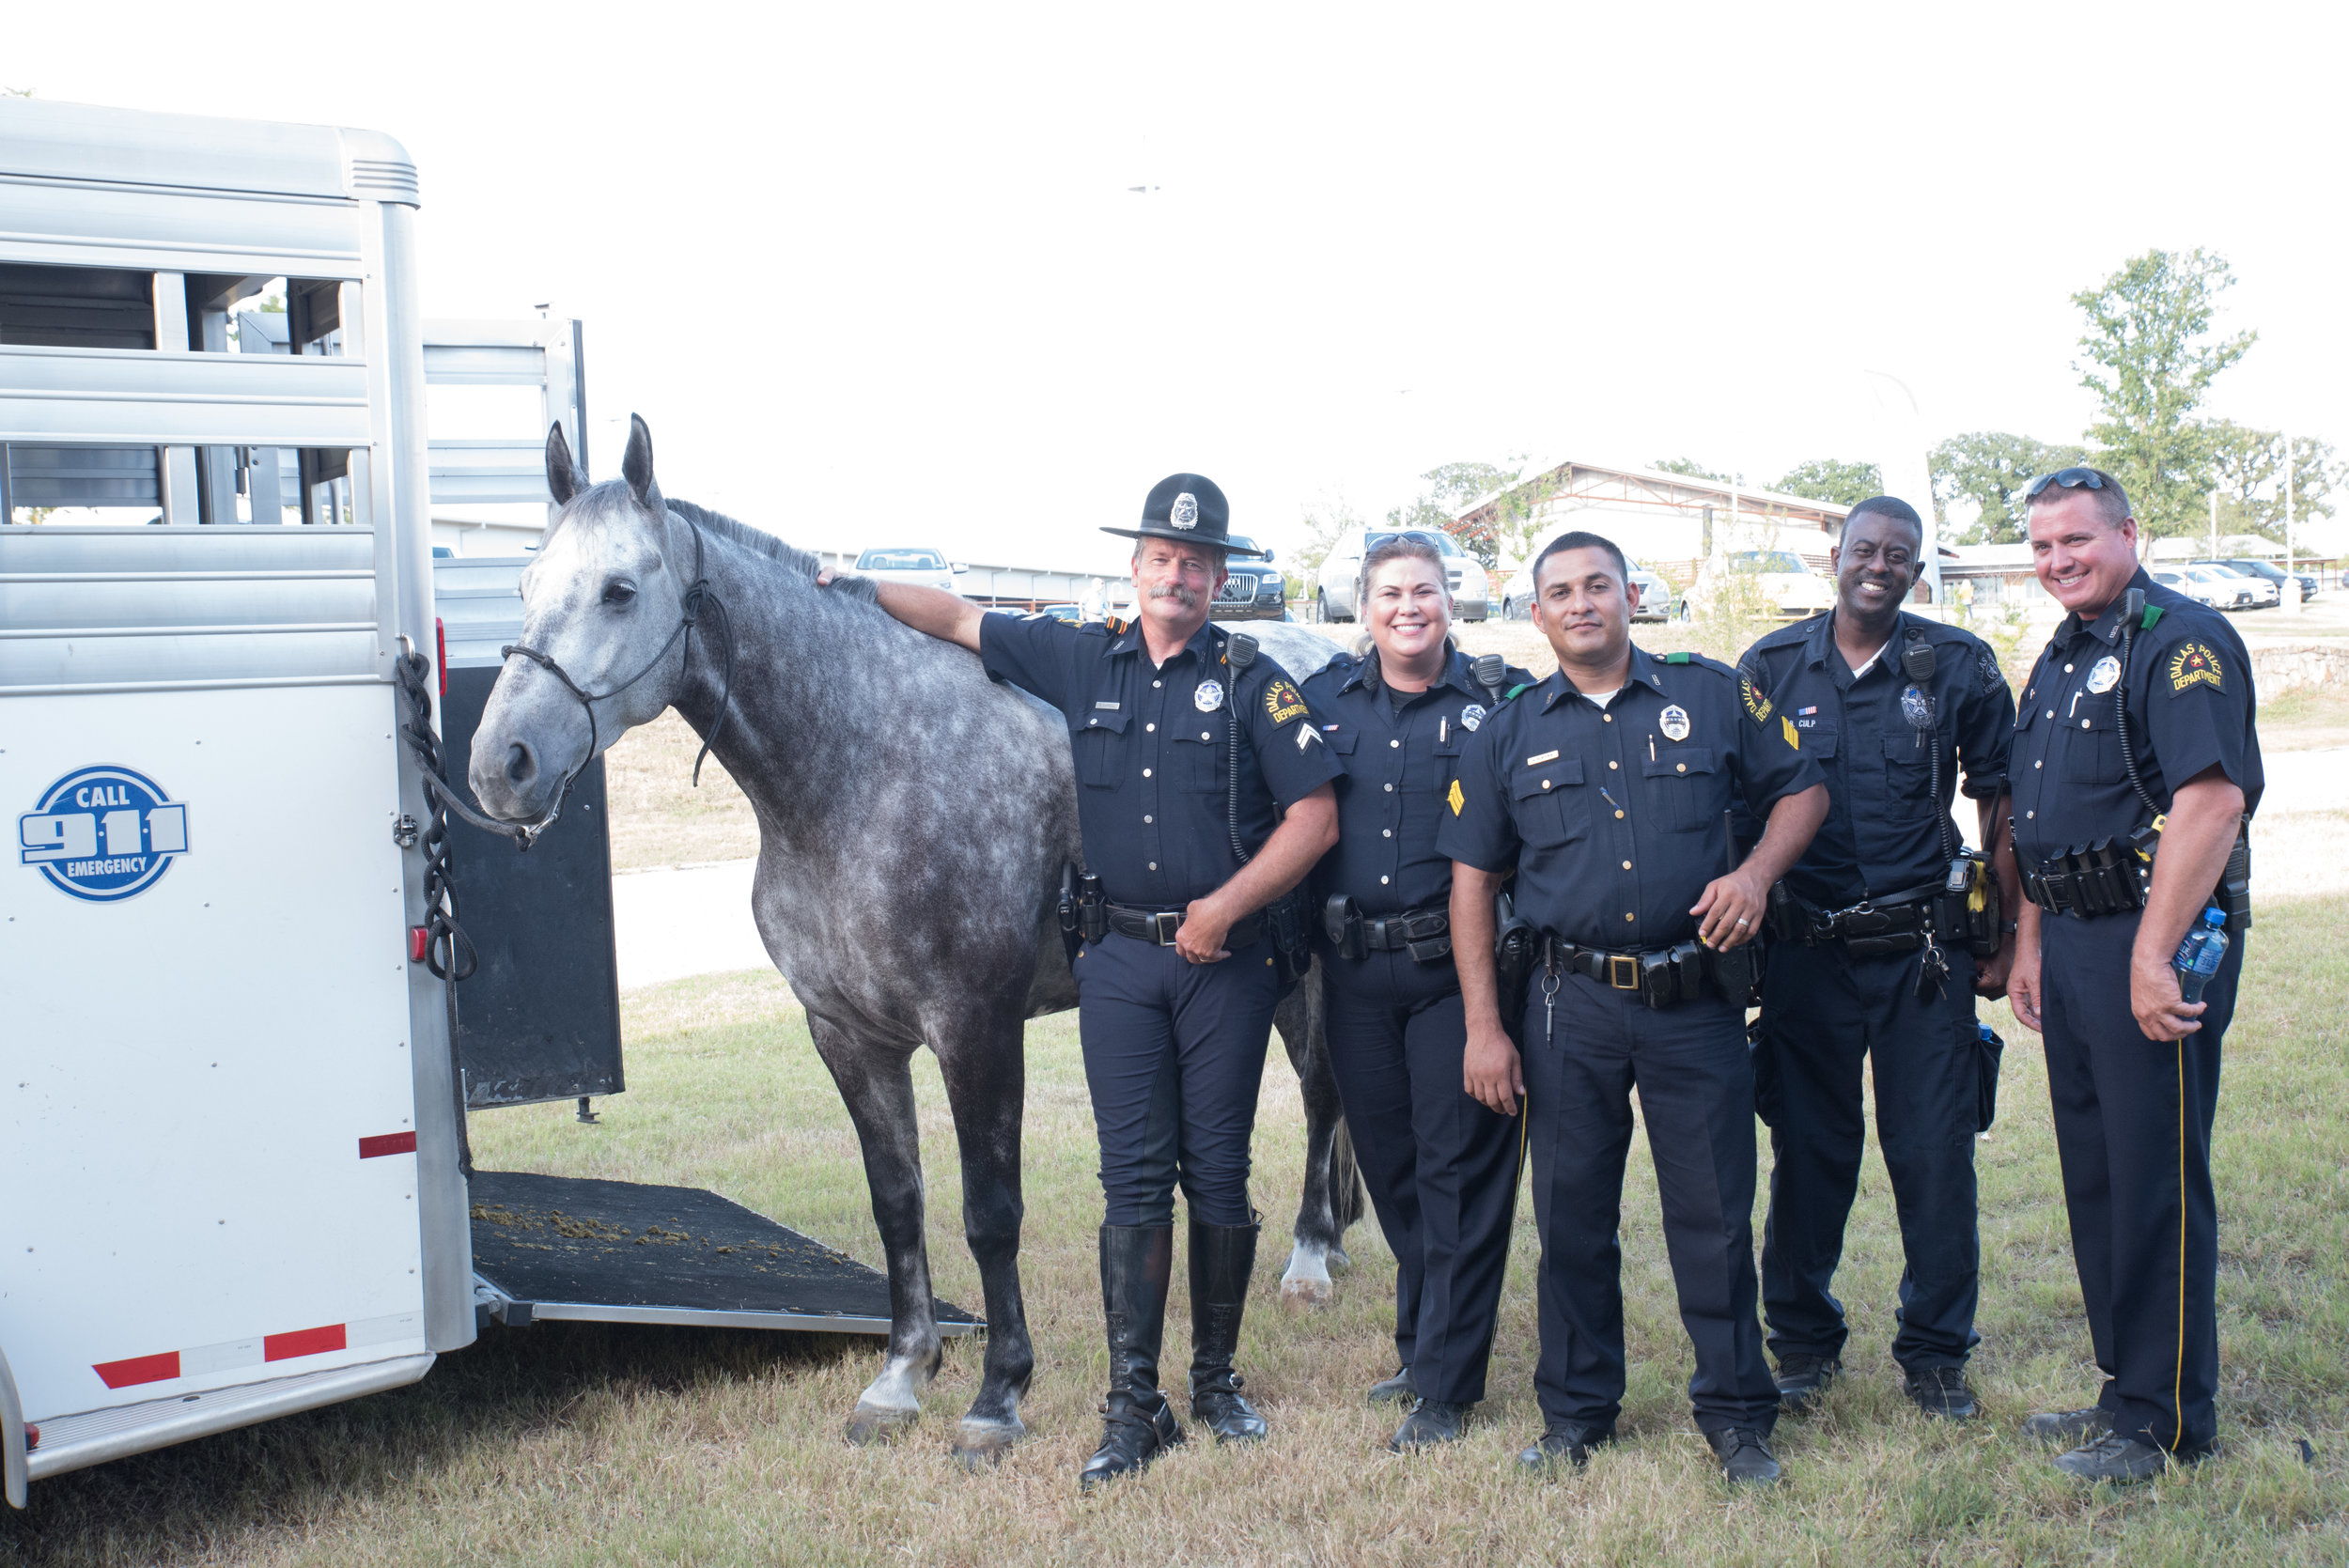 EQUEST-5166 - DPD Mounted Police, Far right Officer Scott Jay.jpg